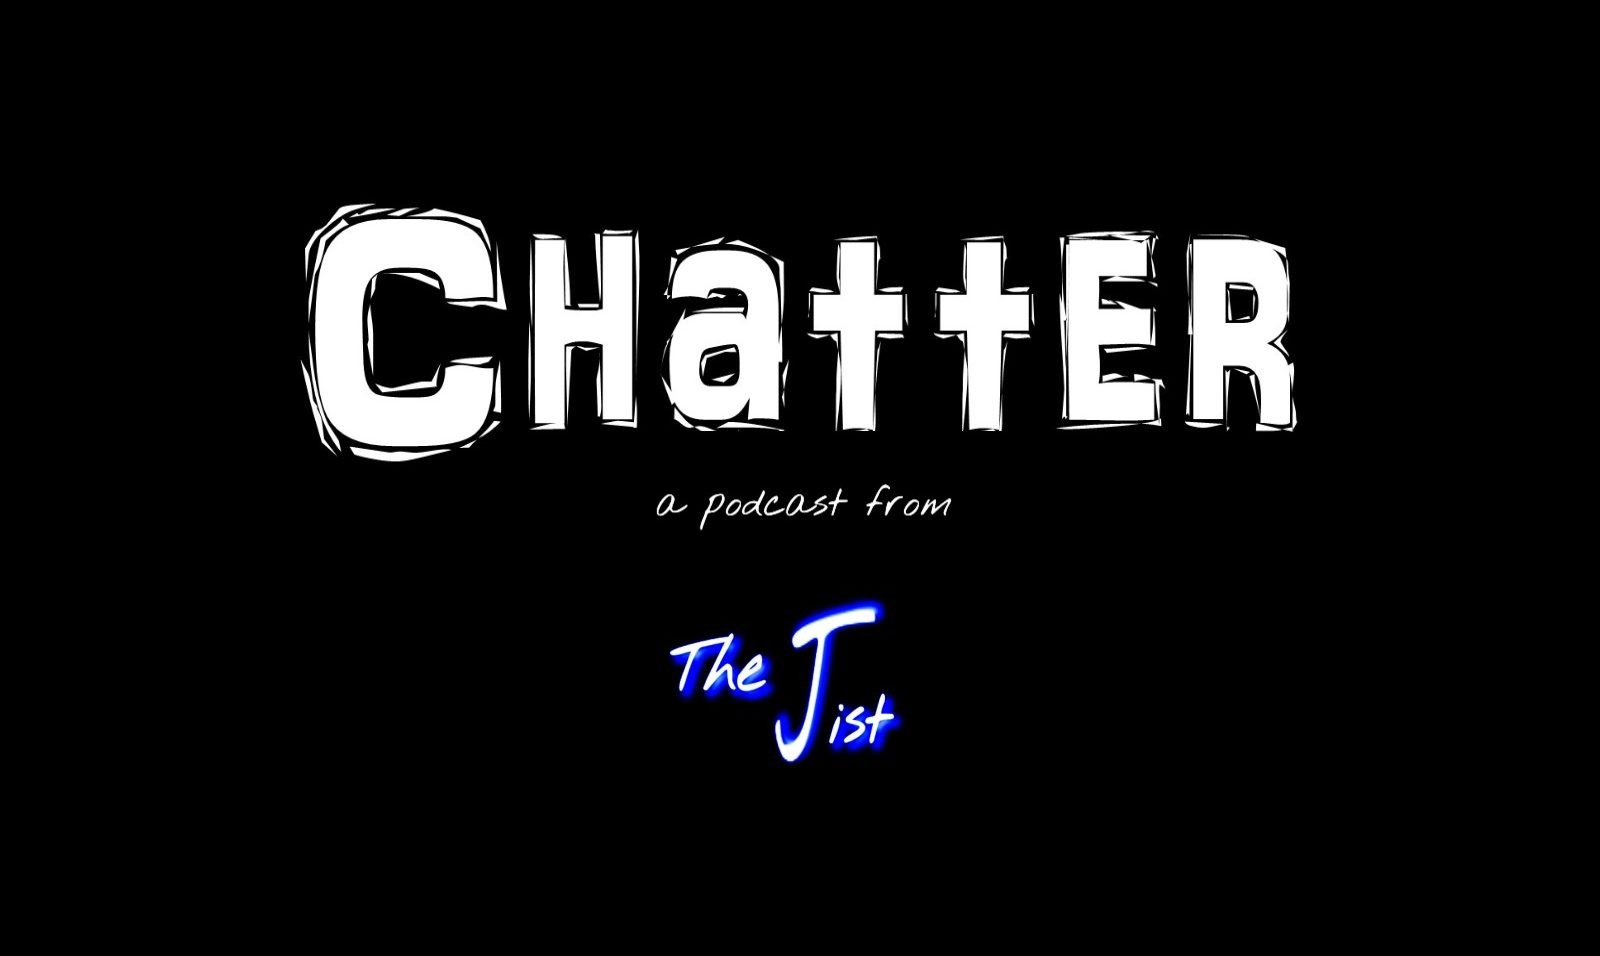 Chatter Episode 1 – Jen Senko on Fox News, Trump's Twitter, and the right wing